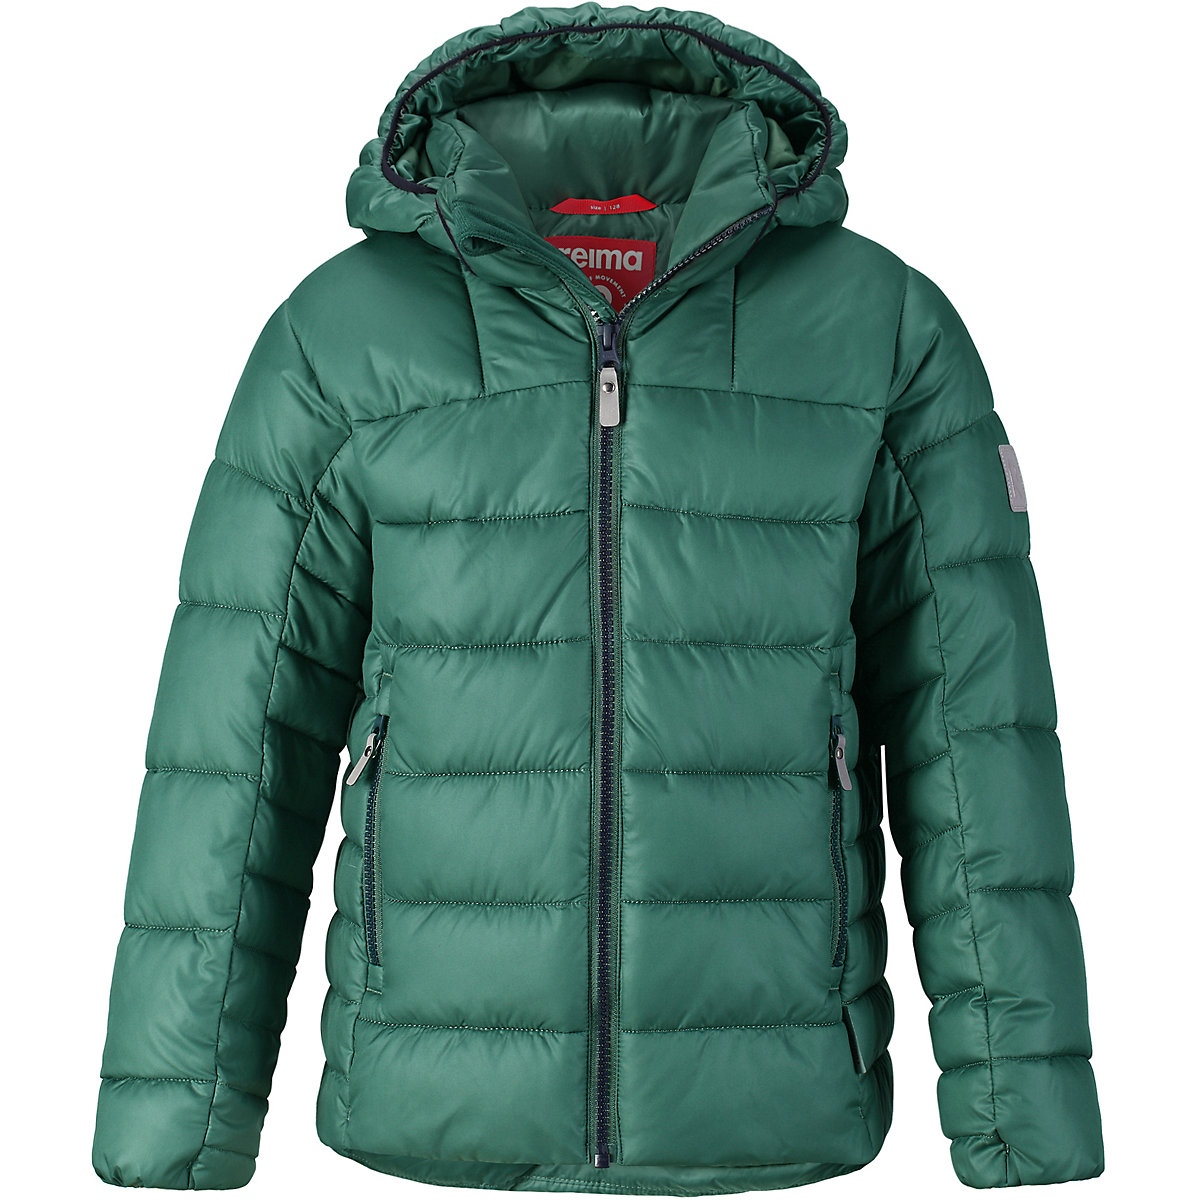 REIMA Jackets 8688751 for boys polyester winter  fur clothes boy vector brand ski jackets men outdoor thermal waterproof snowboard skiing jackets climbing snow winter clothes hxf70002